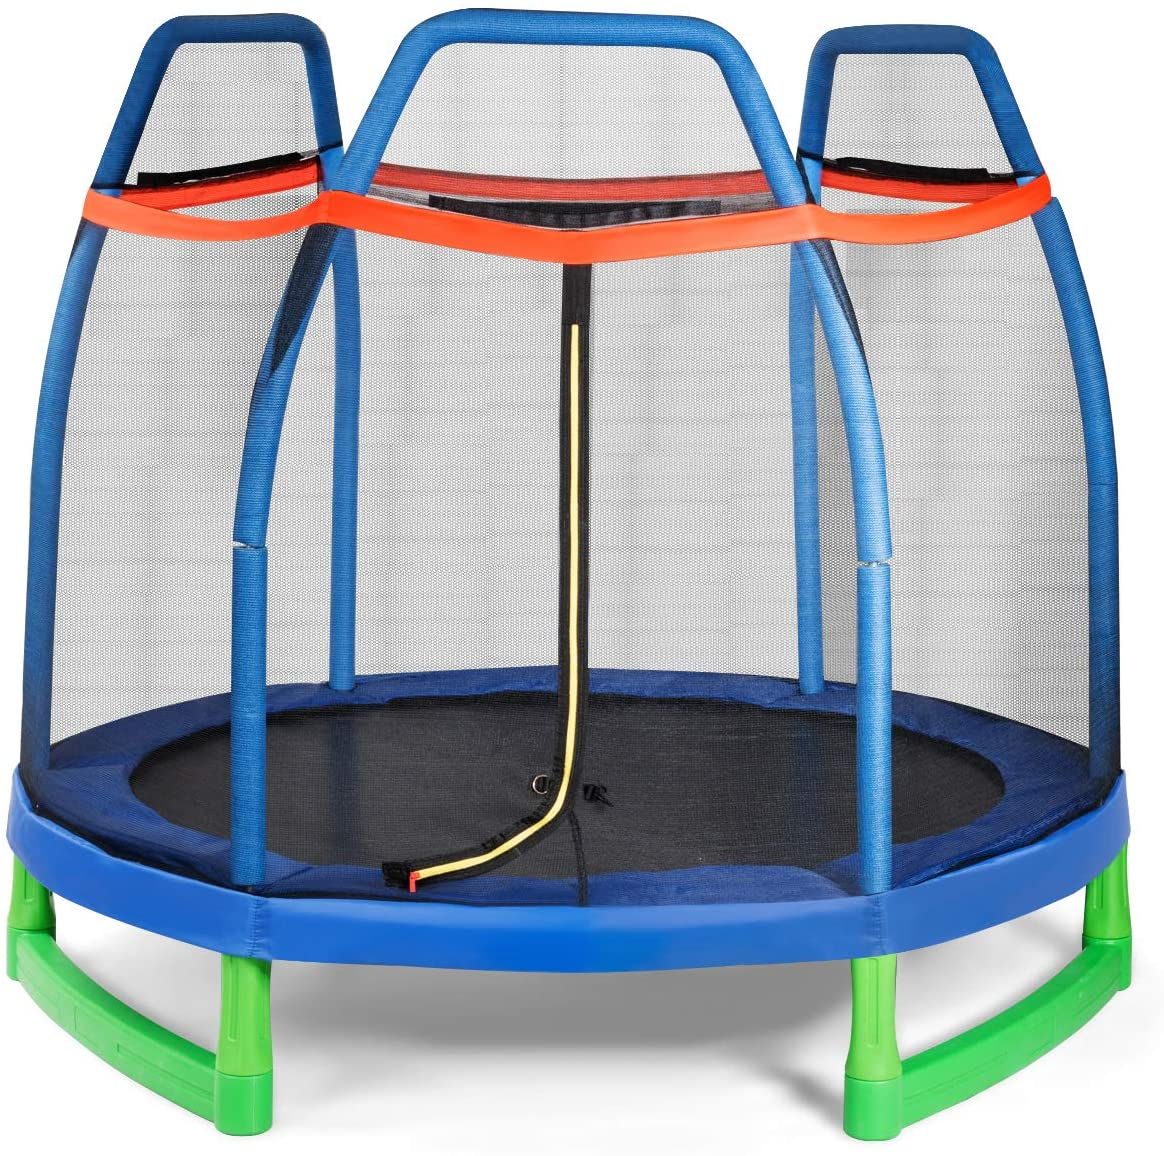 Giantex 7 Ft Kids Trampoline